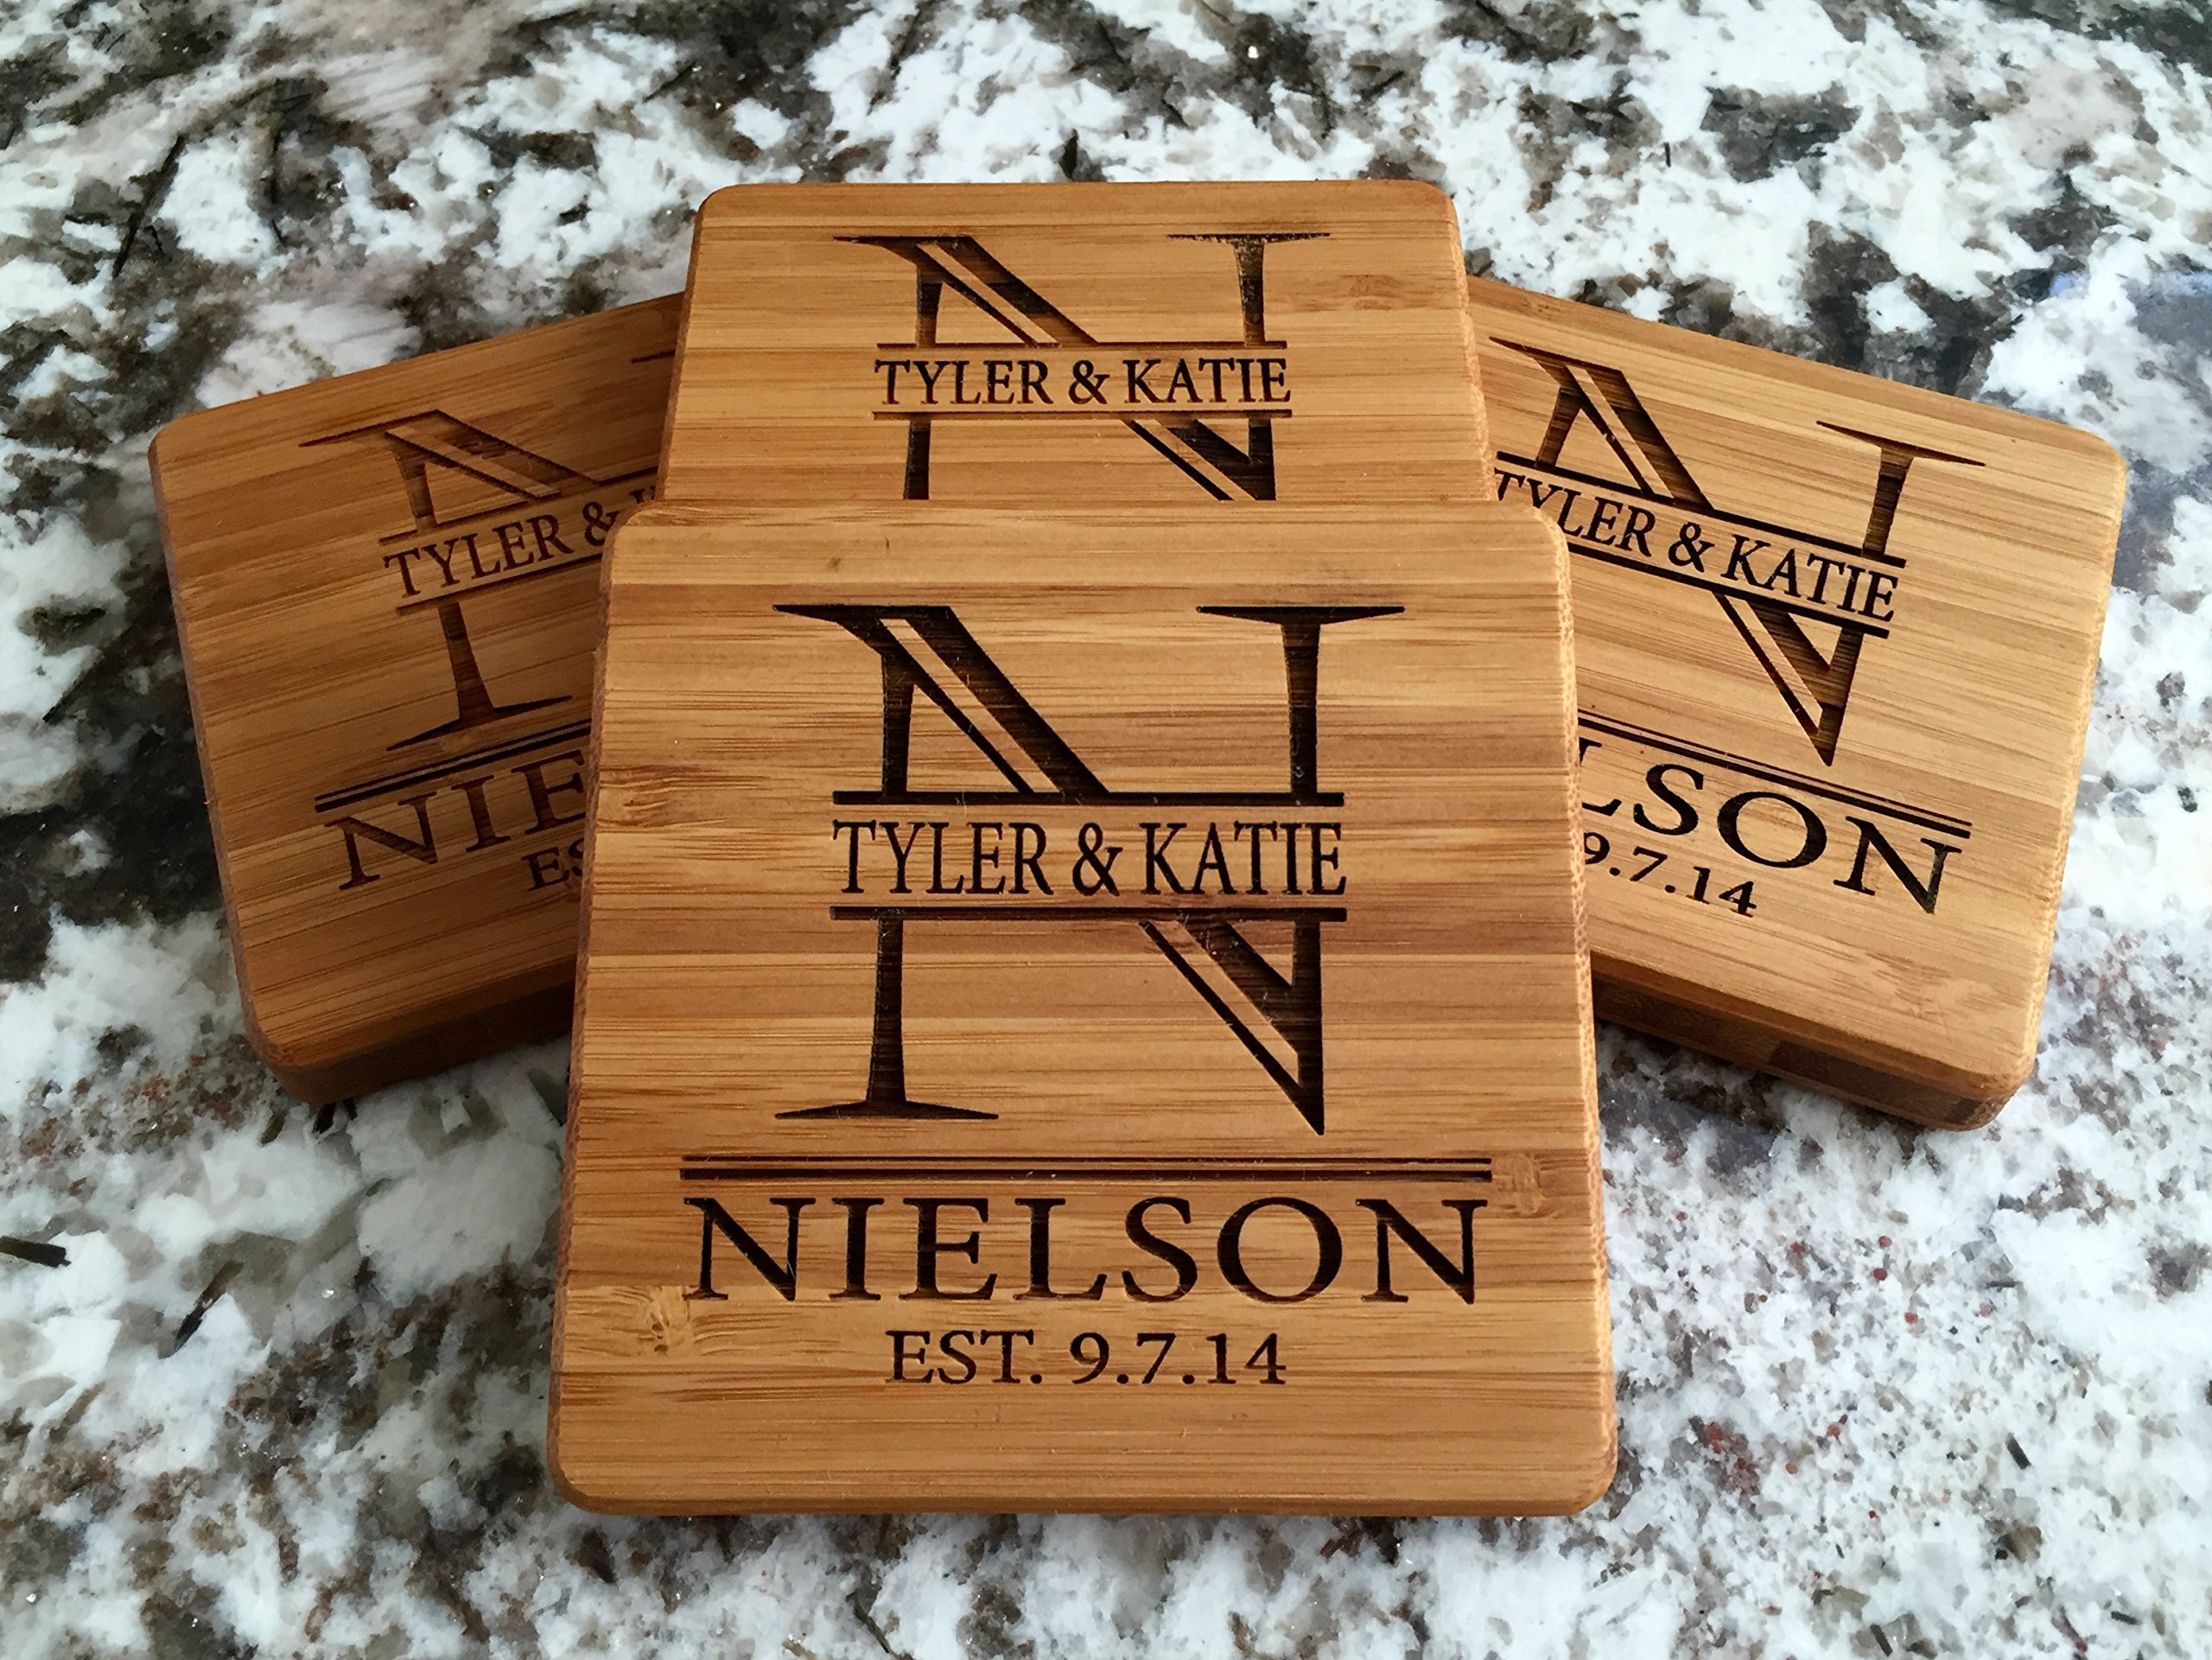 Personalized Wedding Gifts and Bridal Shower Gifts - Monogram Wood Coasters for Drinks (Set of 6, Nielson Design)